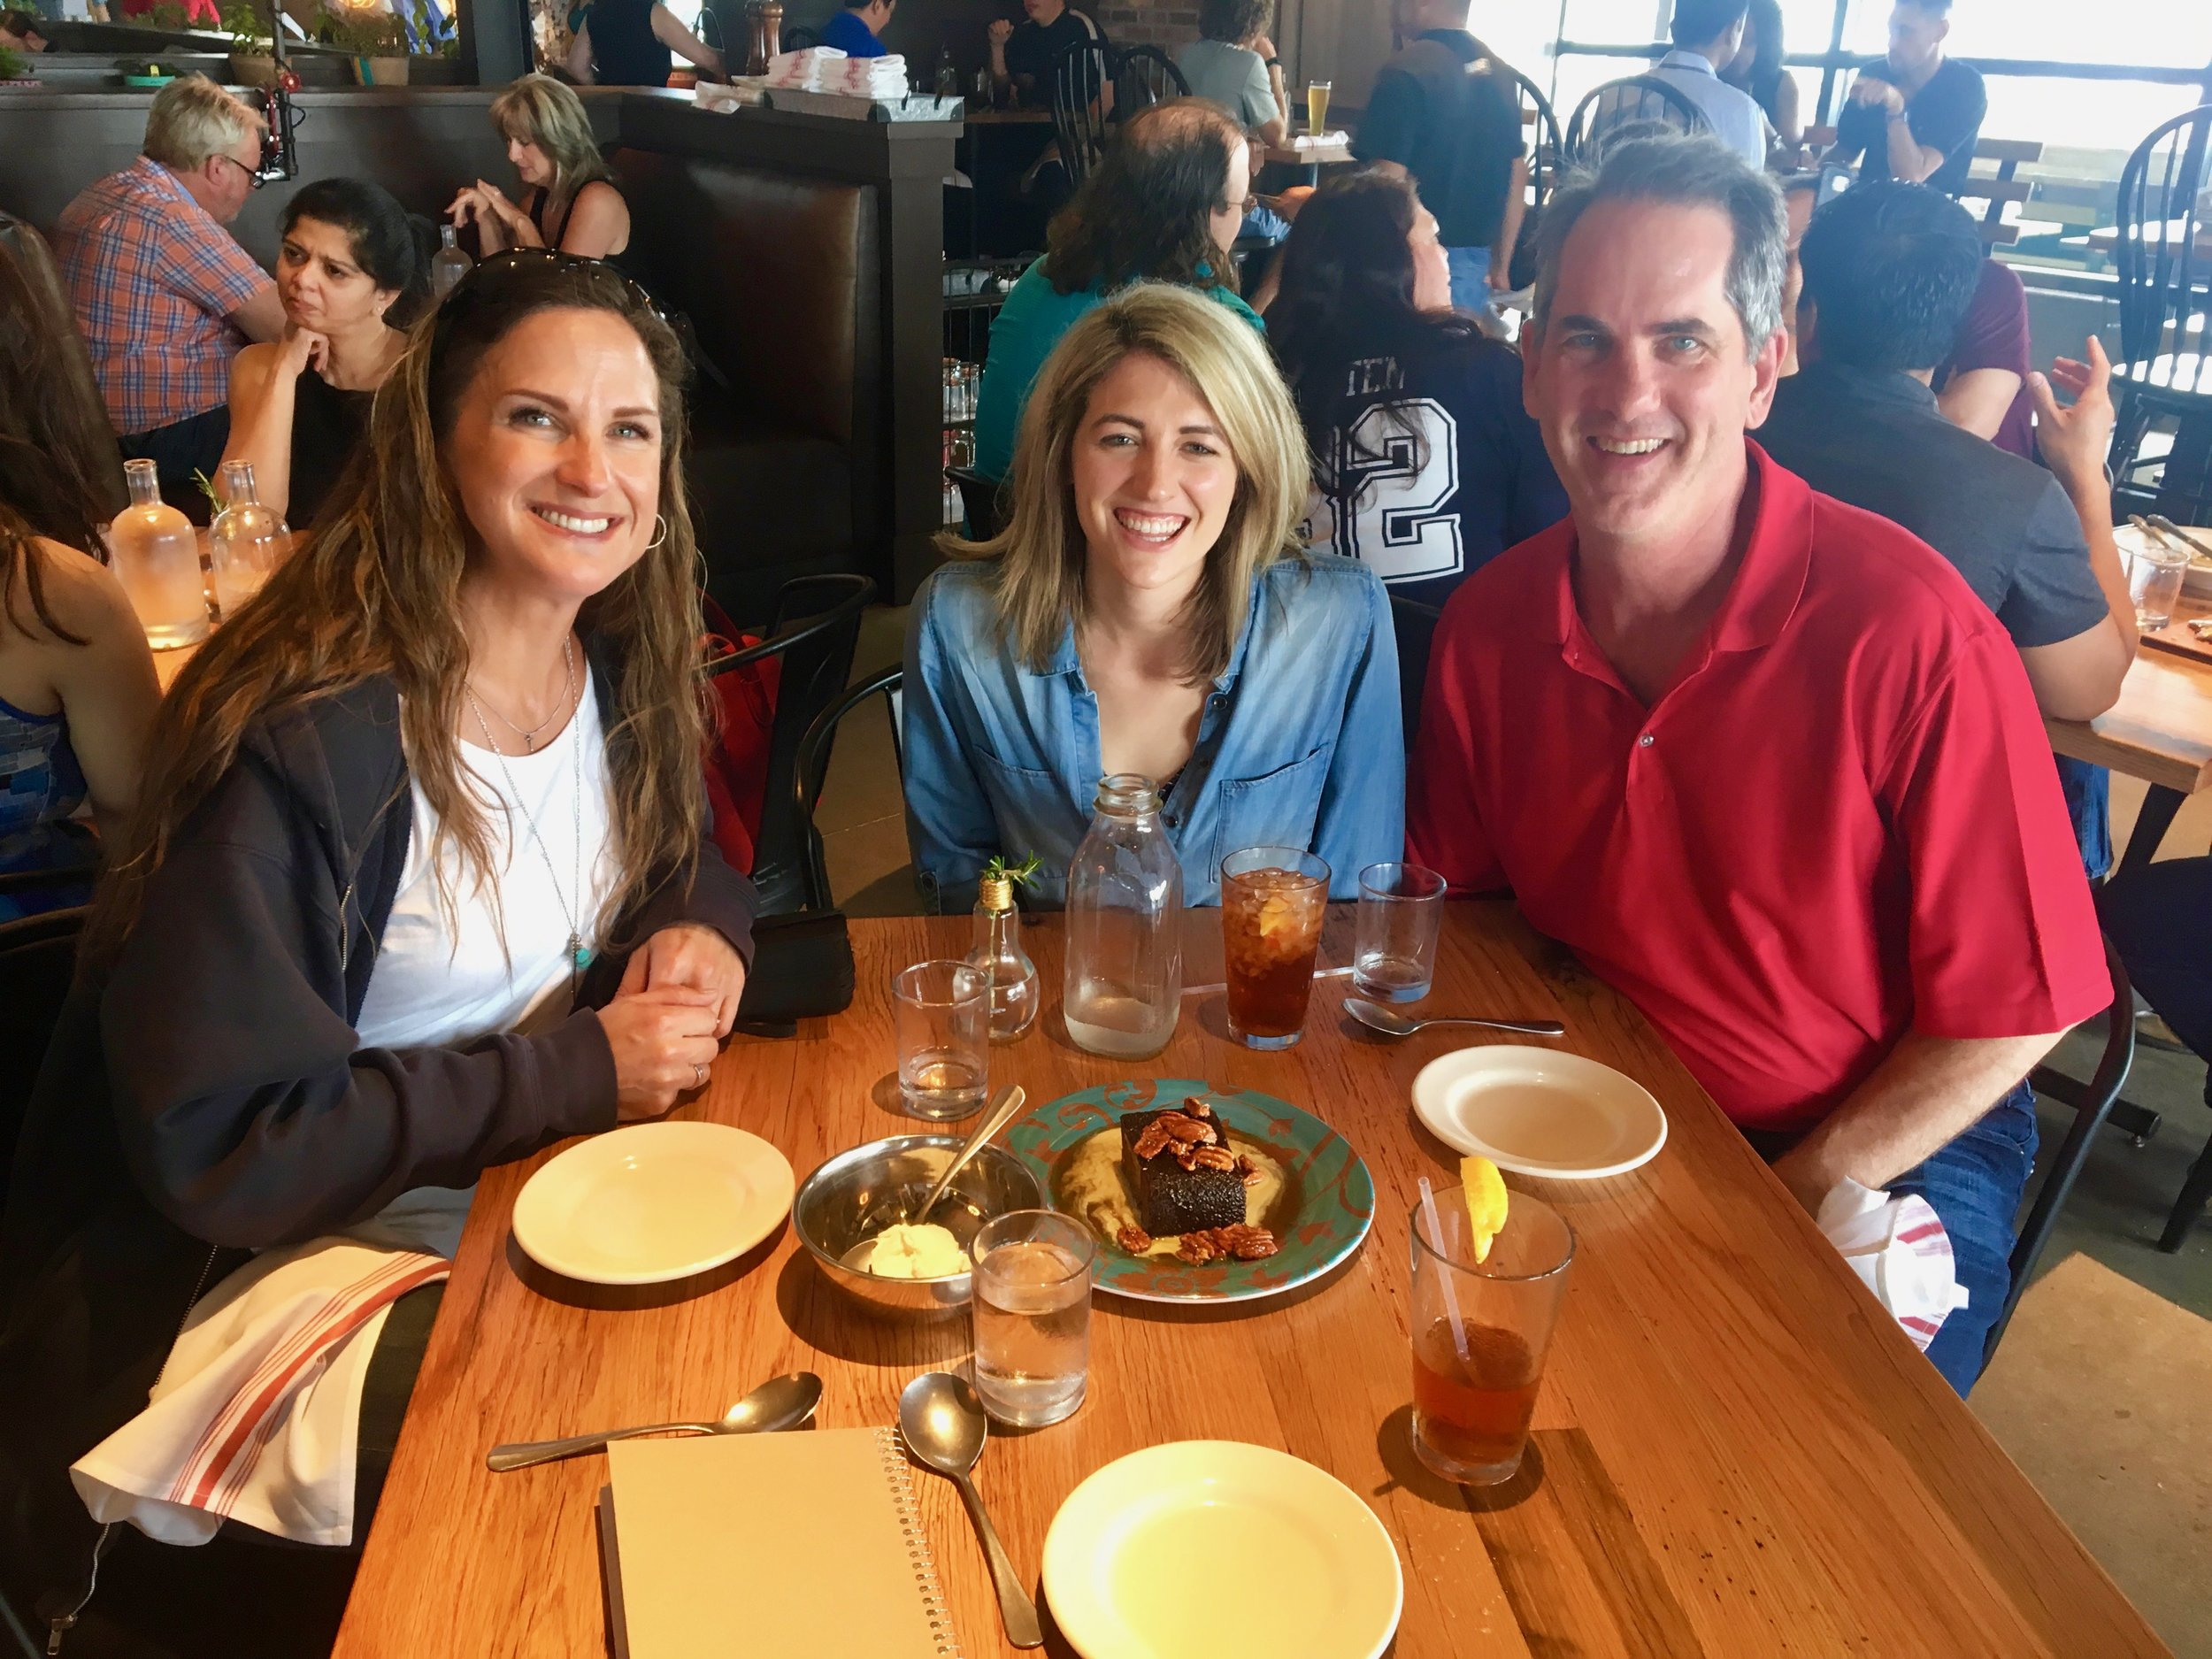 pictured left to right: Candice Gouge (VP of Talent & Engagement), Julia Kortberg (Touring with Purpose), and Lance Shipp (CFO)